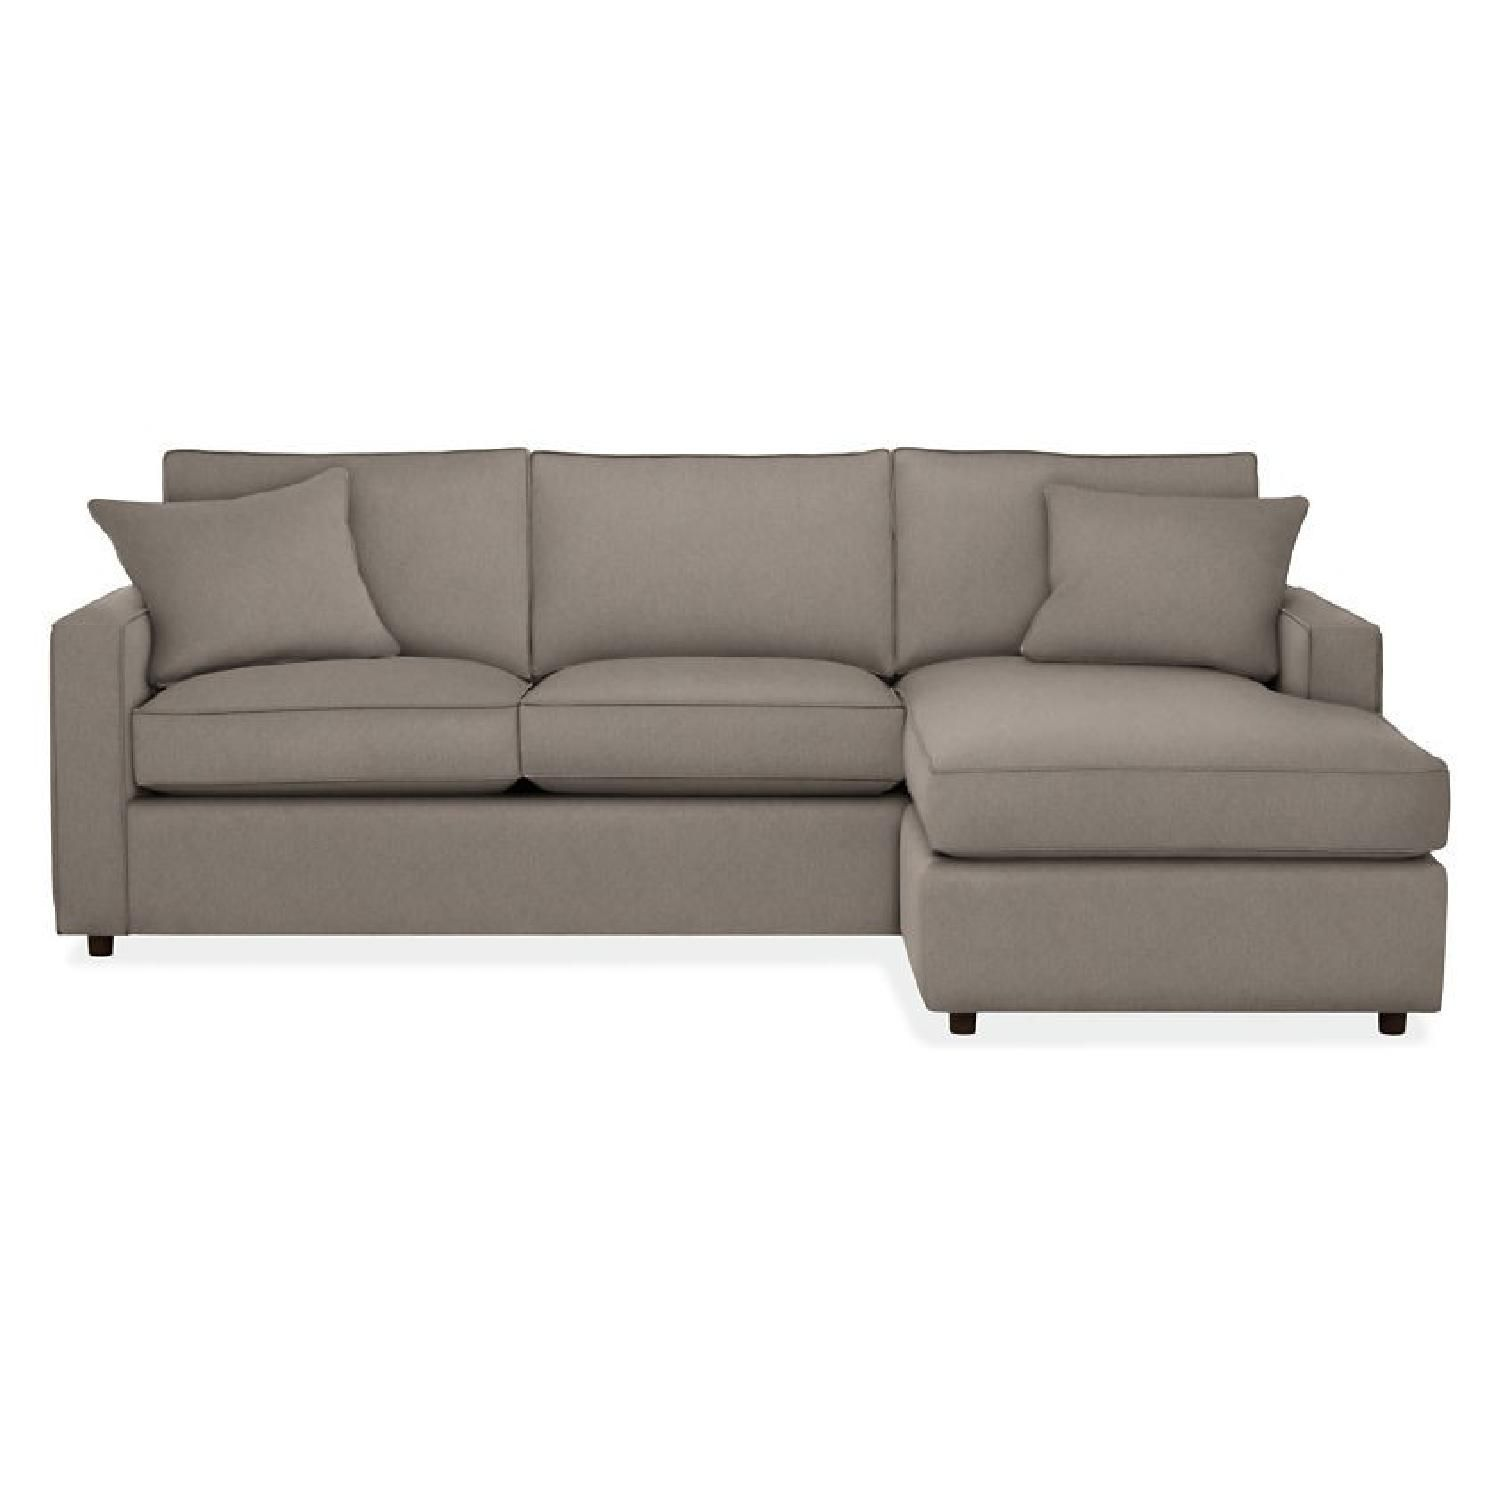 Room board york reversible chaise sectional sofa in good condition available for sale in nj montclair 07042